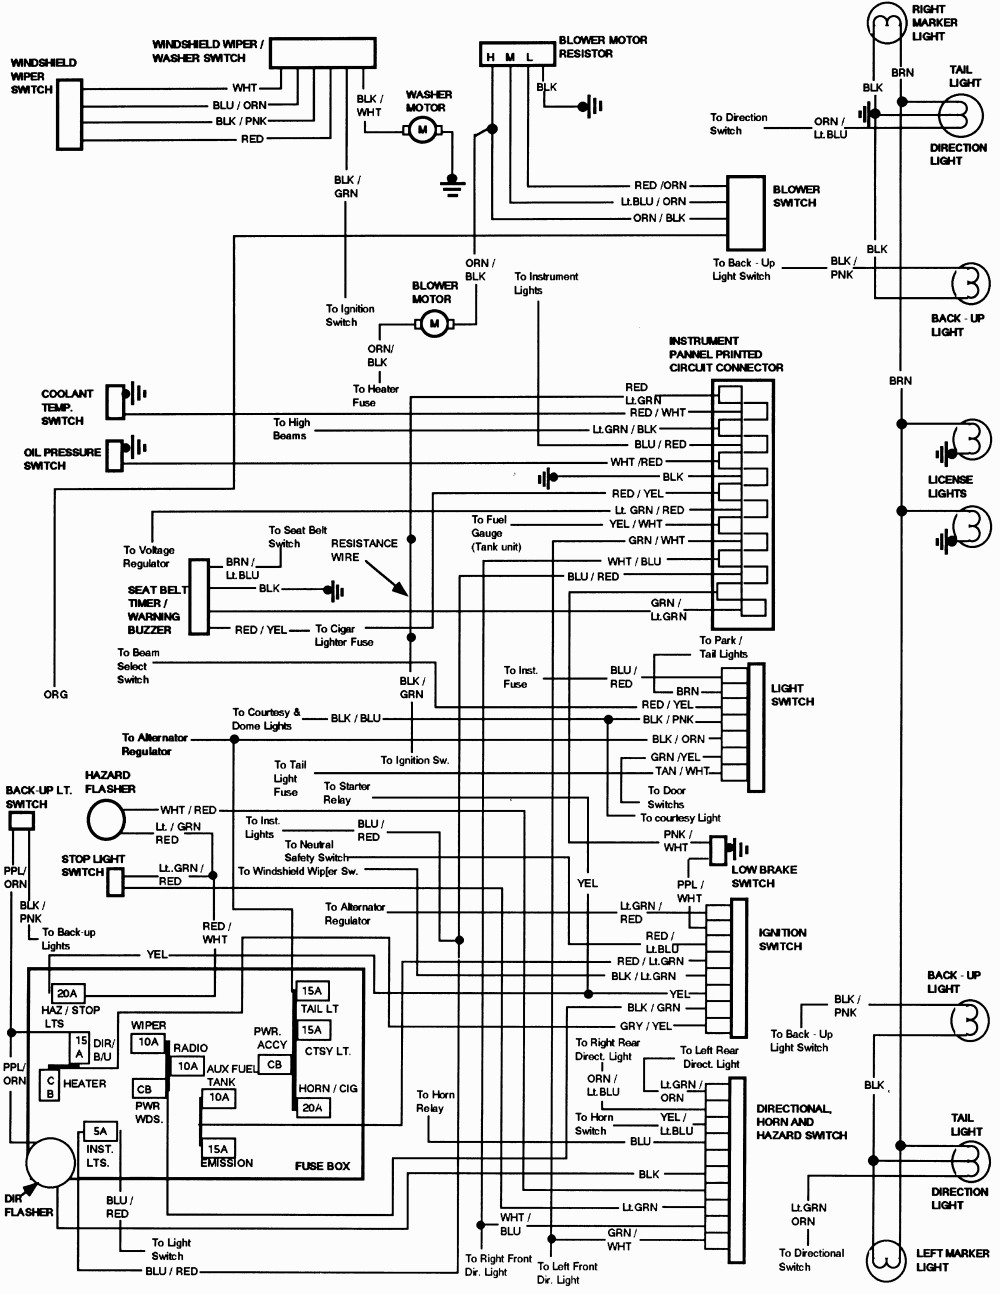 ignition wiring diagram for 2006 f150 wiring diagram for 78 f150 ranger #11